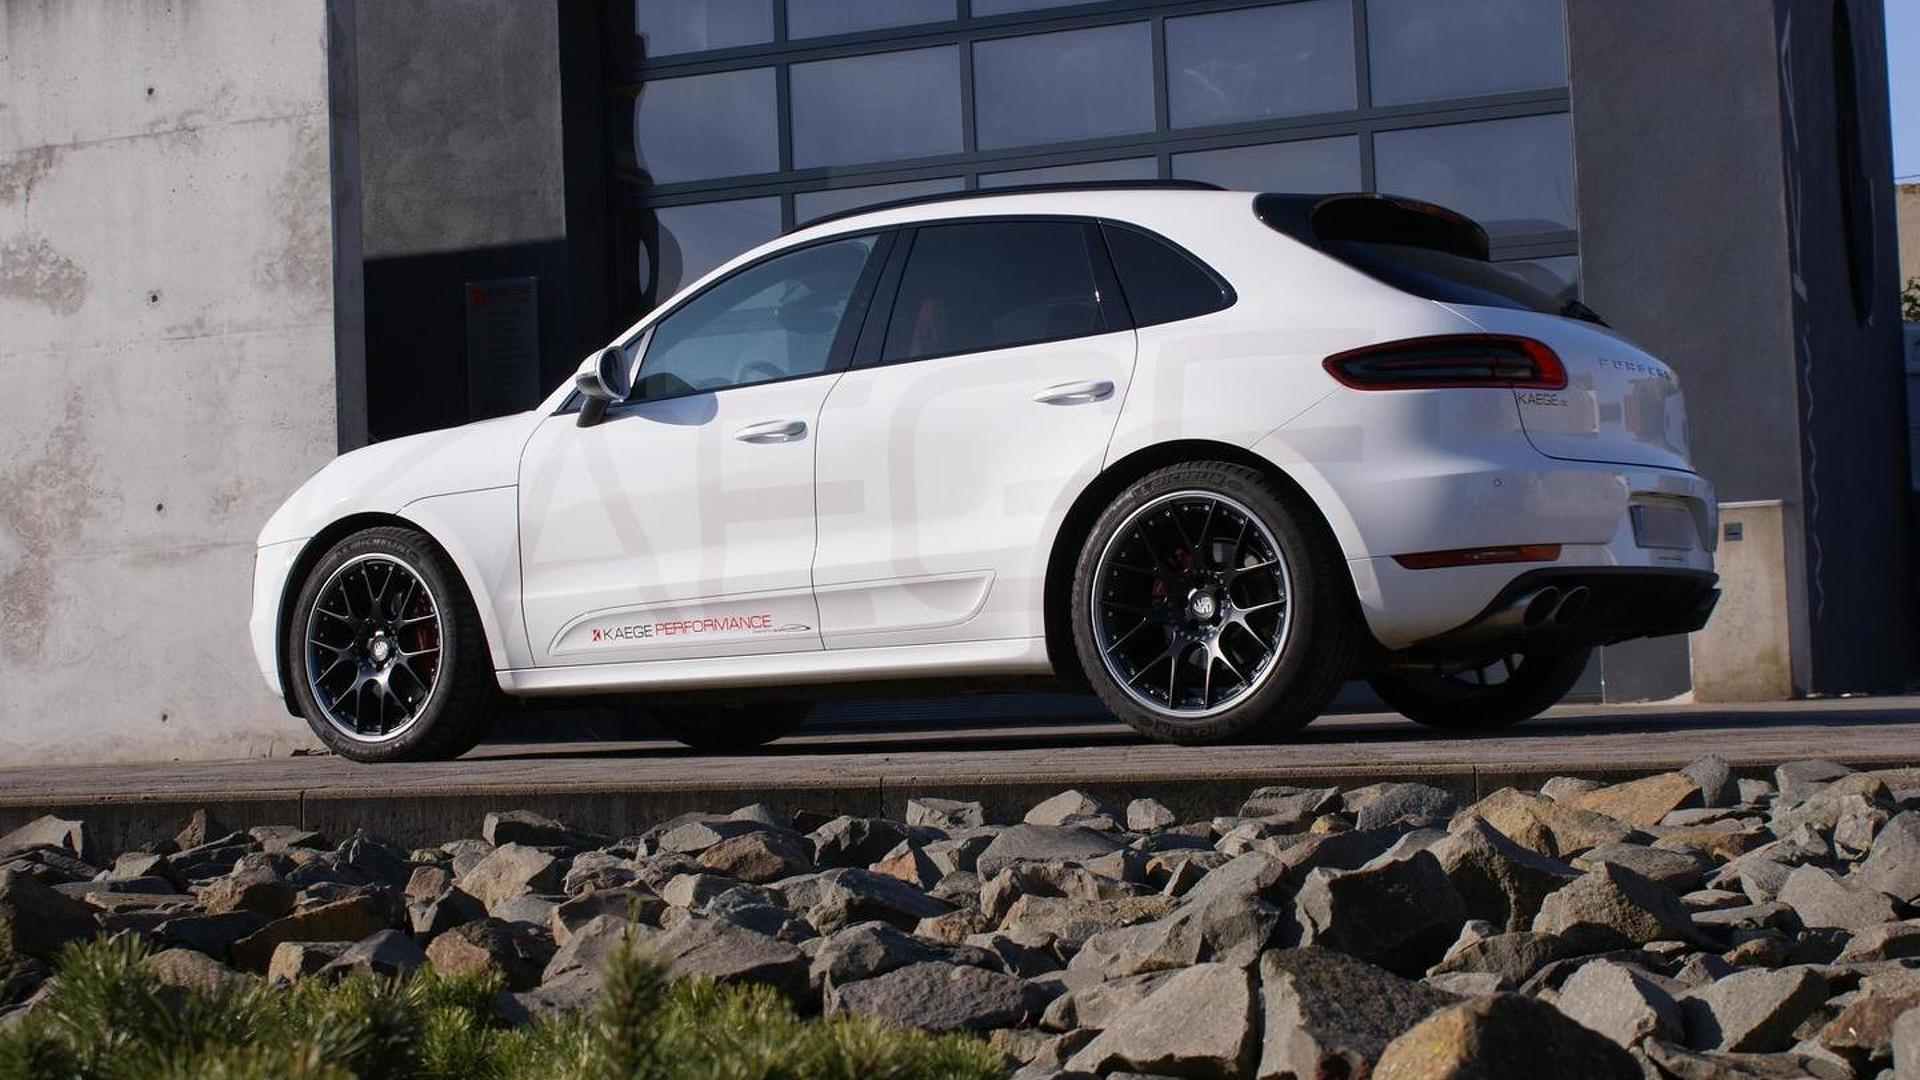 Porsche Macan S Diesel Tuned To 310 Hp By Kaege Video